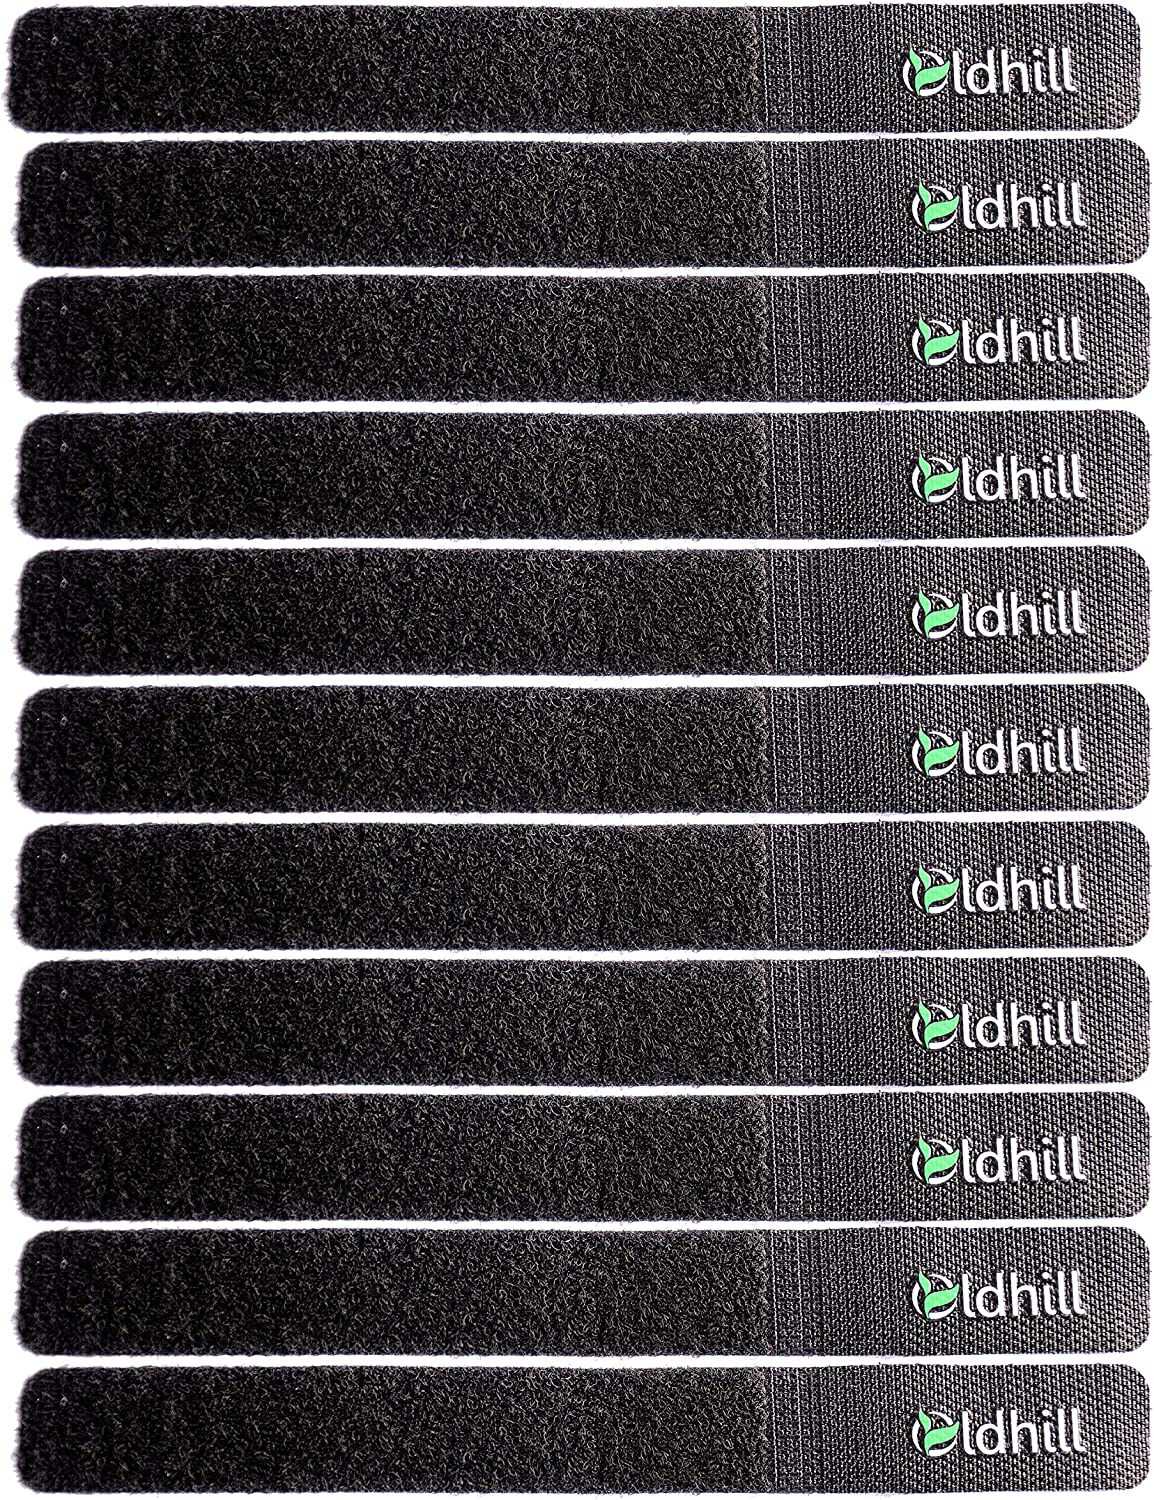 Oldhill Hook and Loop Fastening Straps (50 Pack) - Black